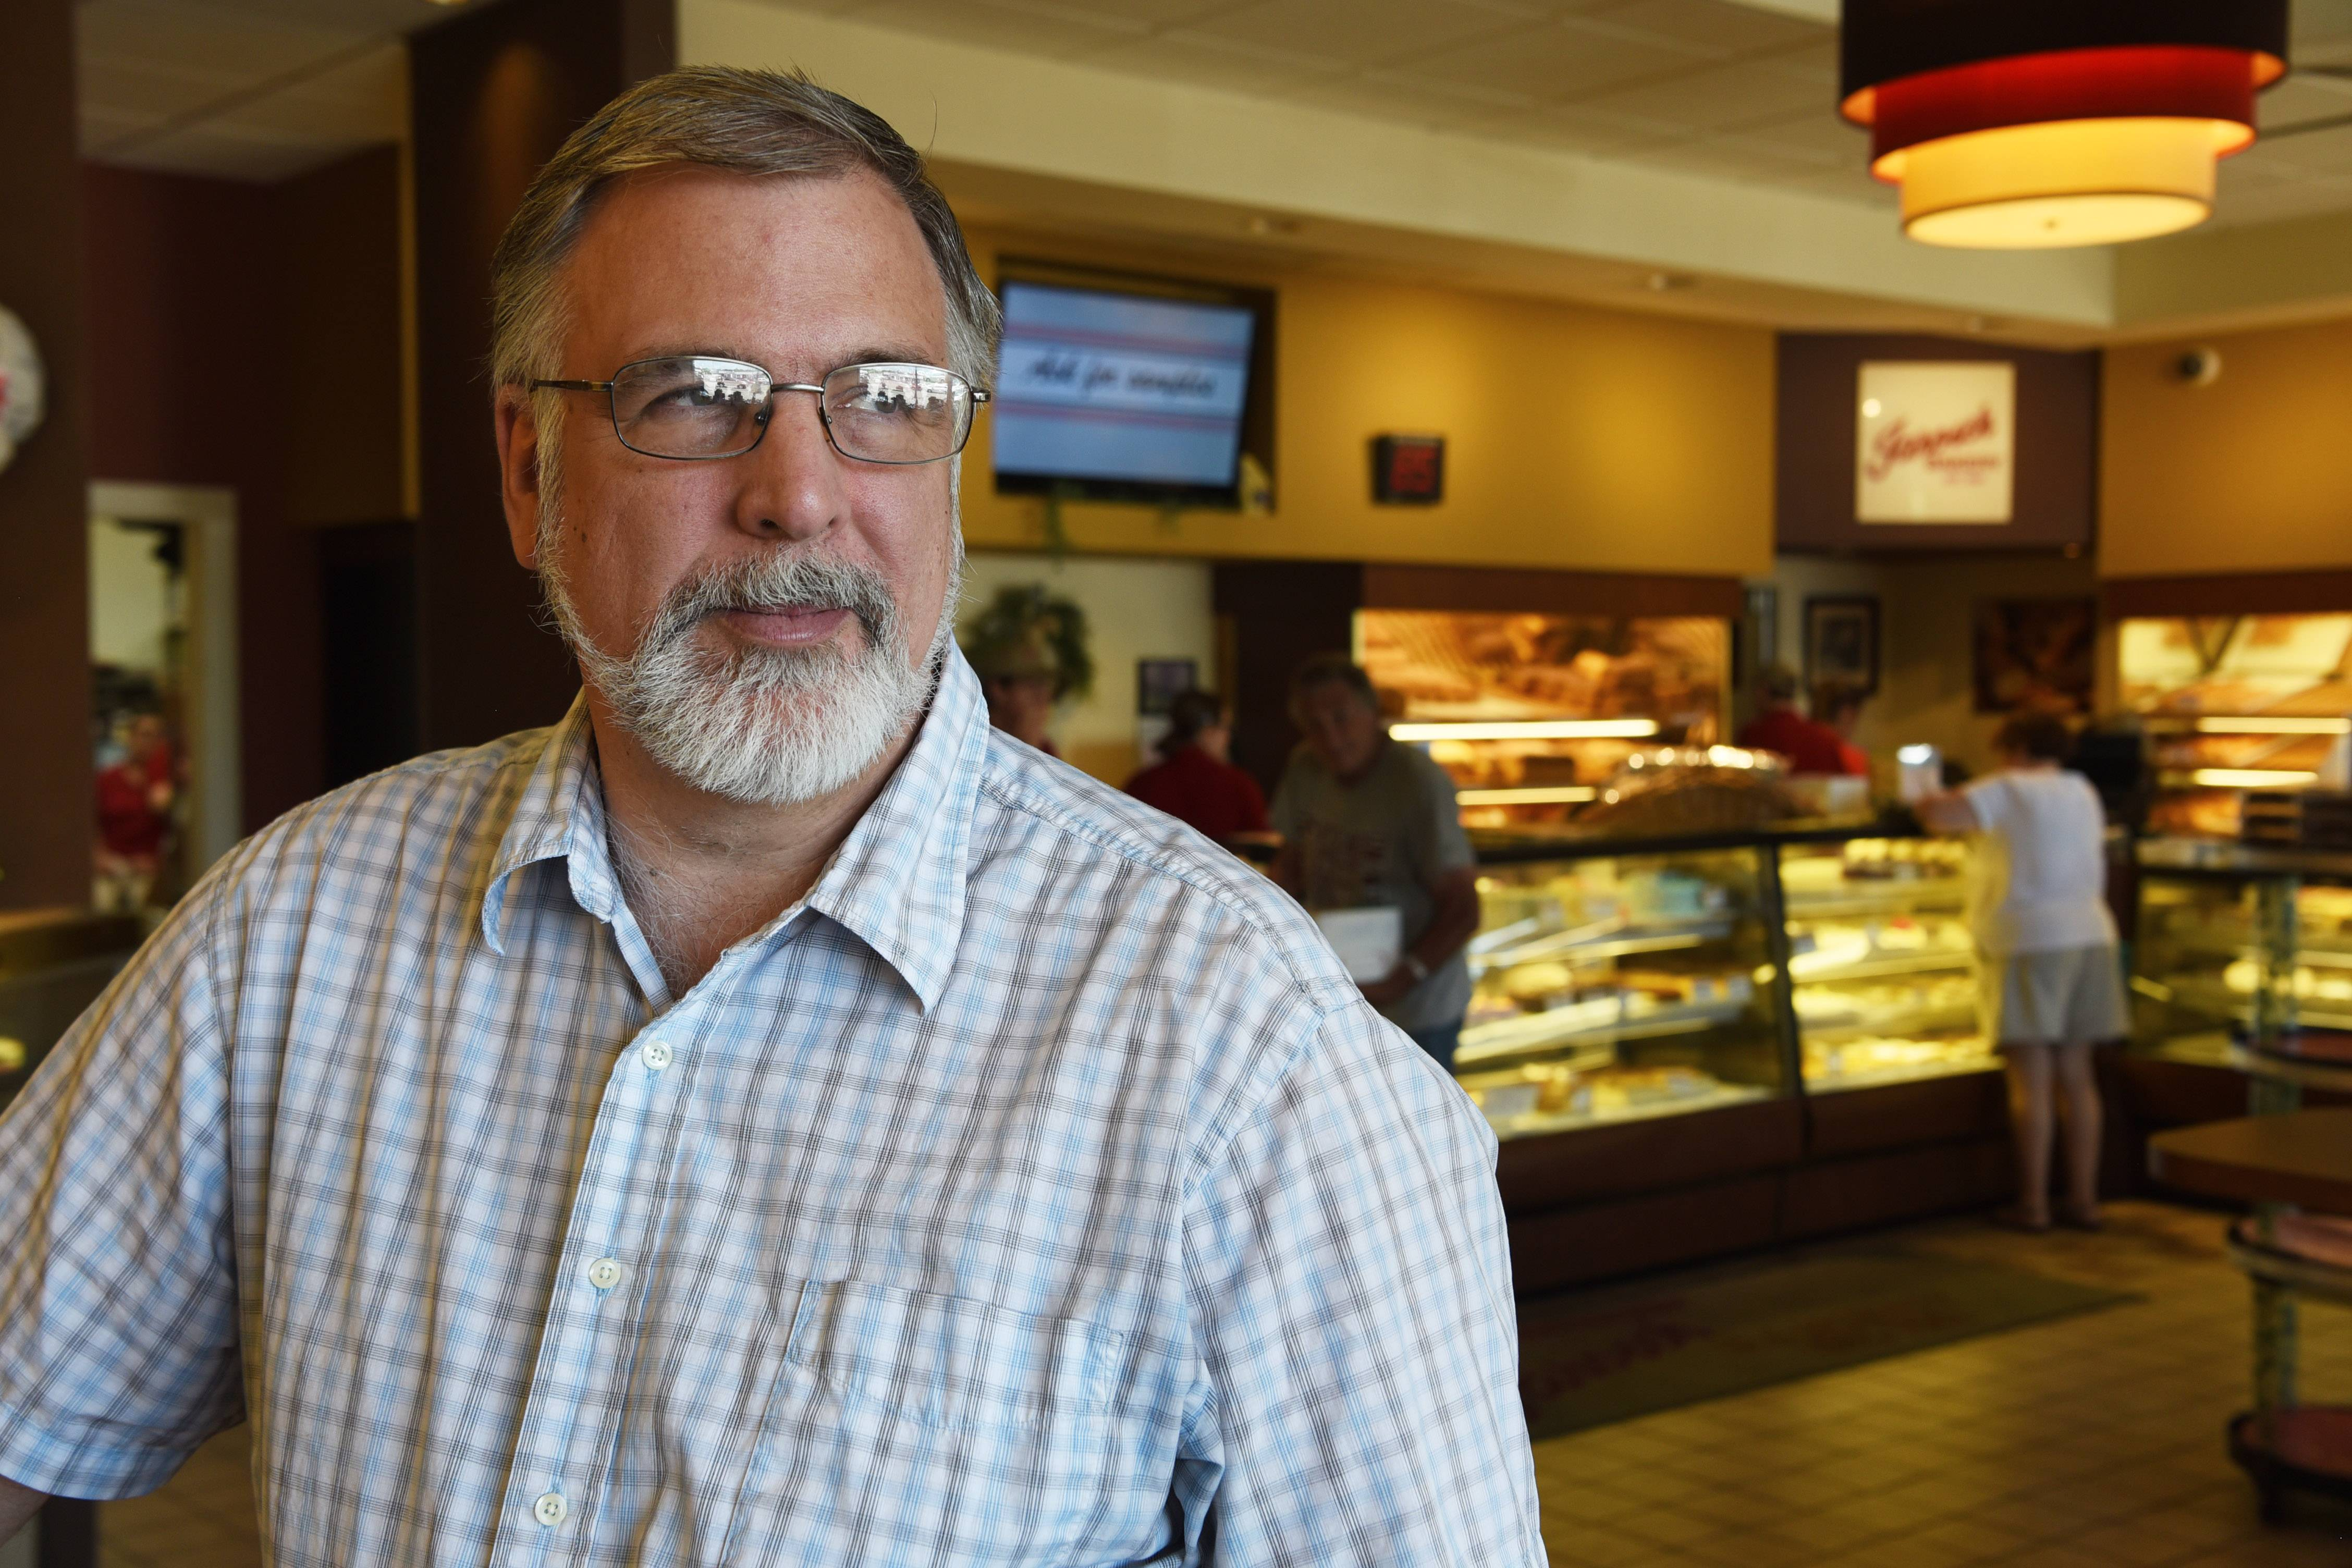 Ken Jarosch talks about how a $15 minimum wage could affect his business at Jarosch Bakery in Elk Grove Village.